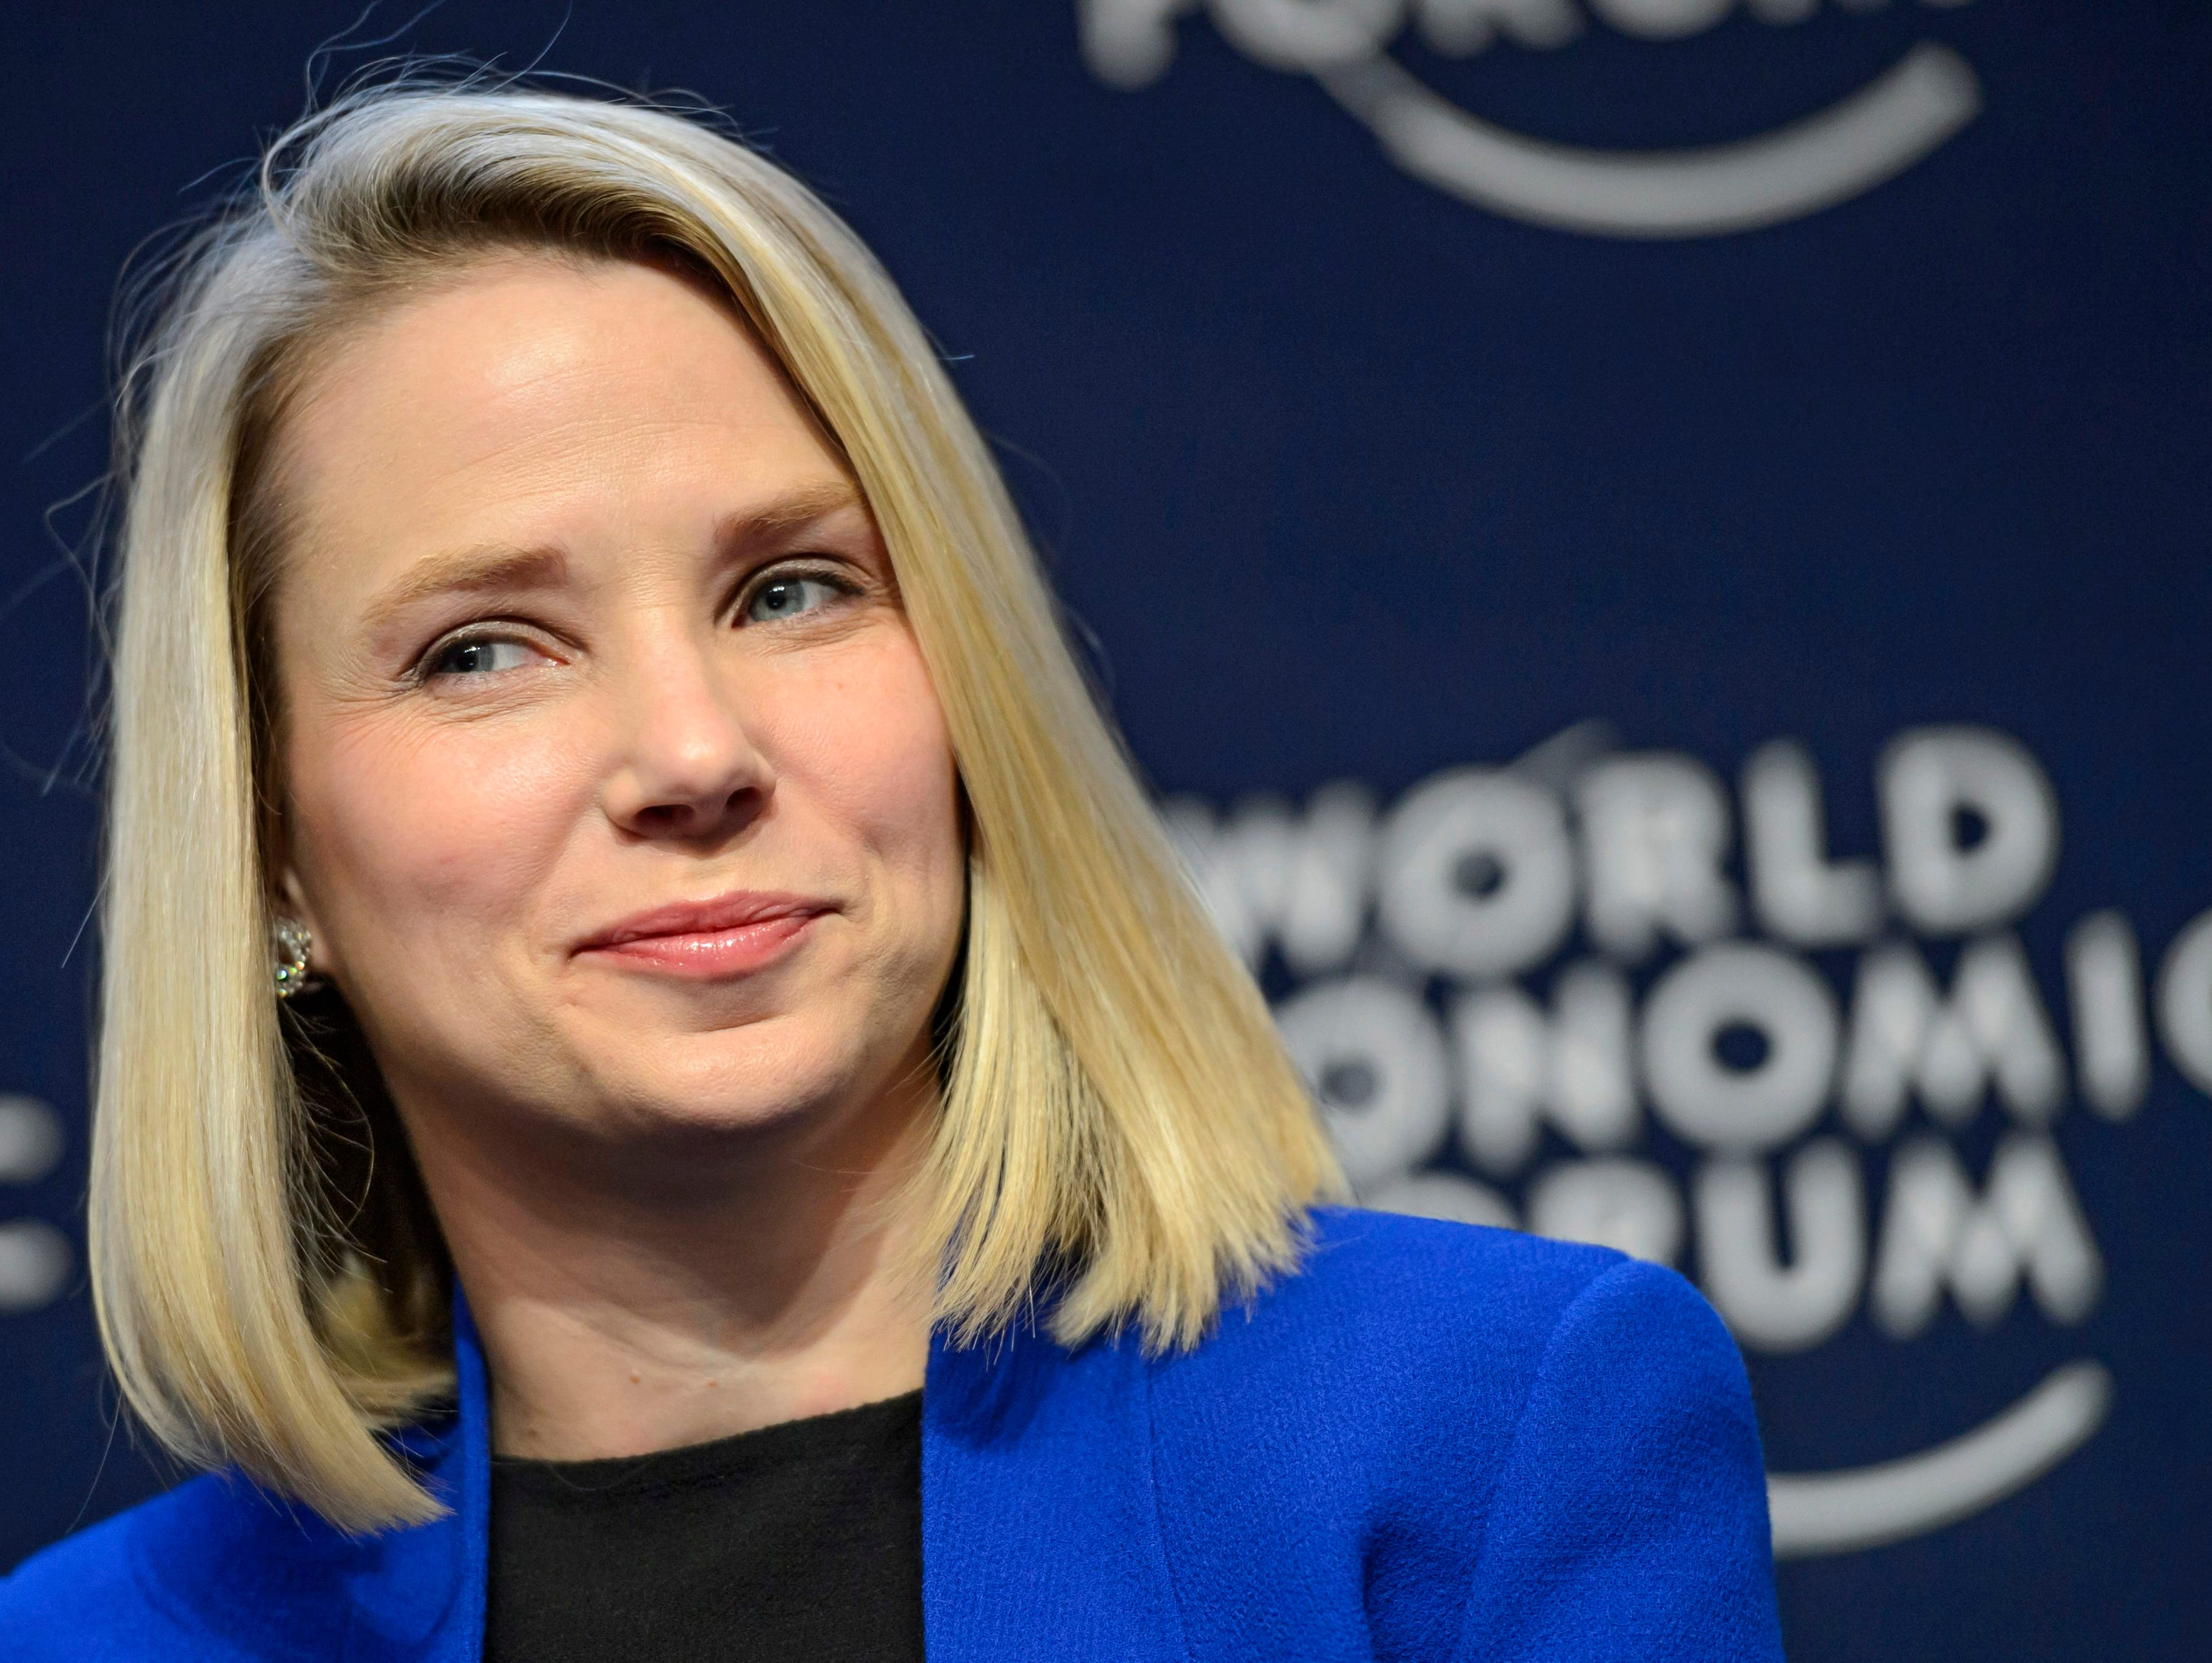 Yahoo CEO Marissa Mayer on Jan, 22, 2014 during a panel session on the first day of the 44th Annual Meeting of the World Economic Forum (WEF) in Davos, Switzerland.